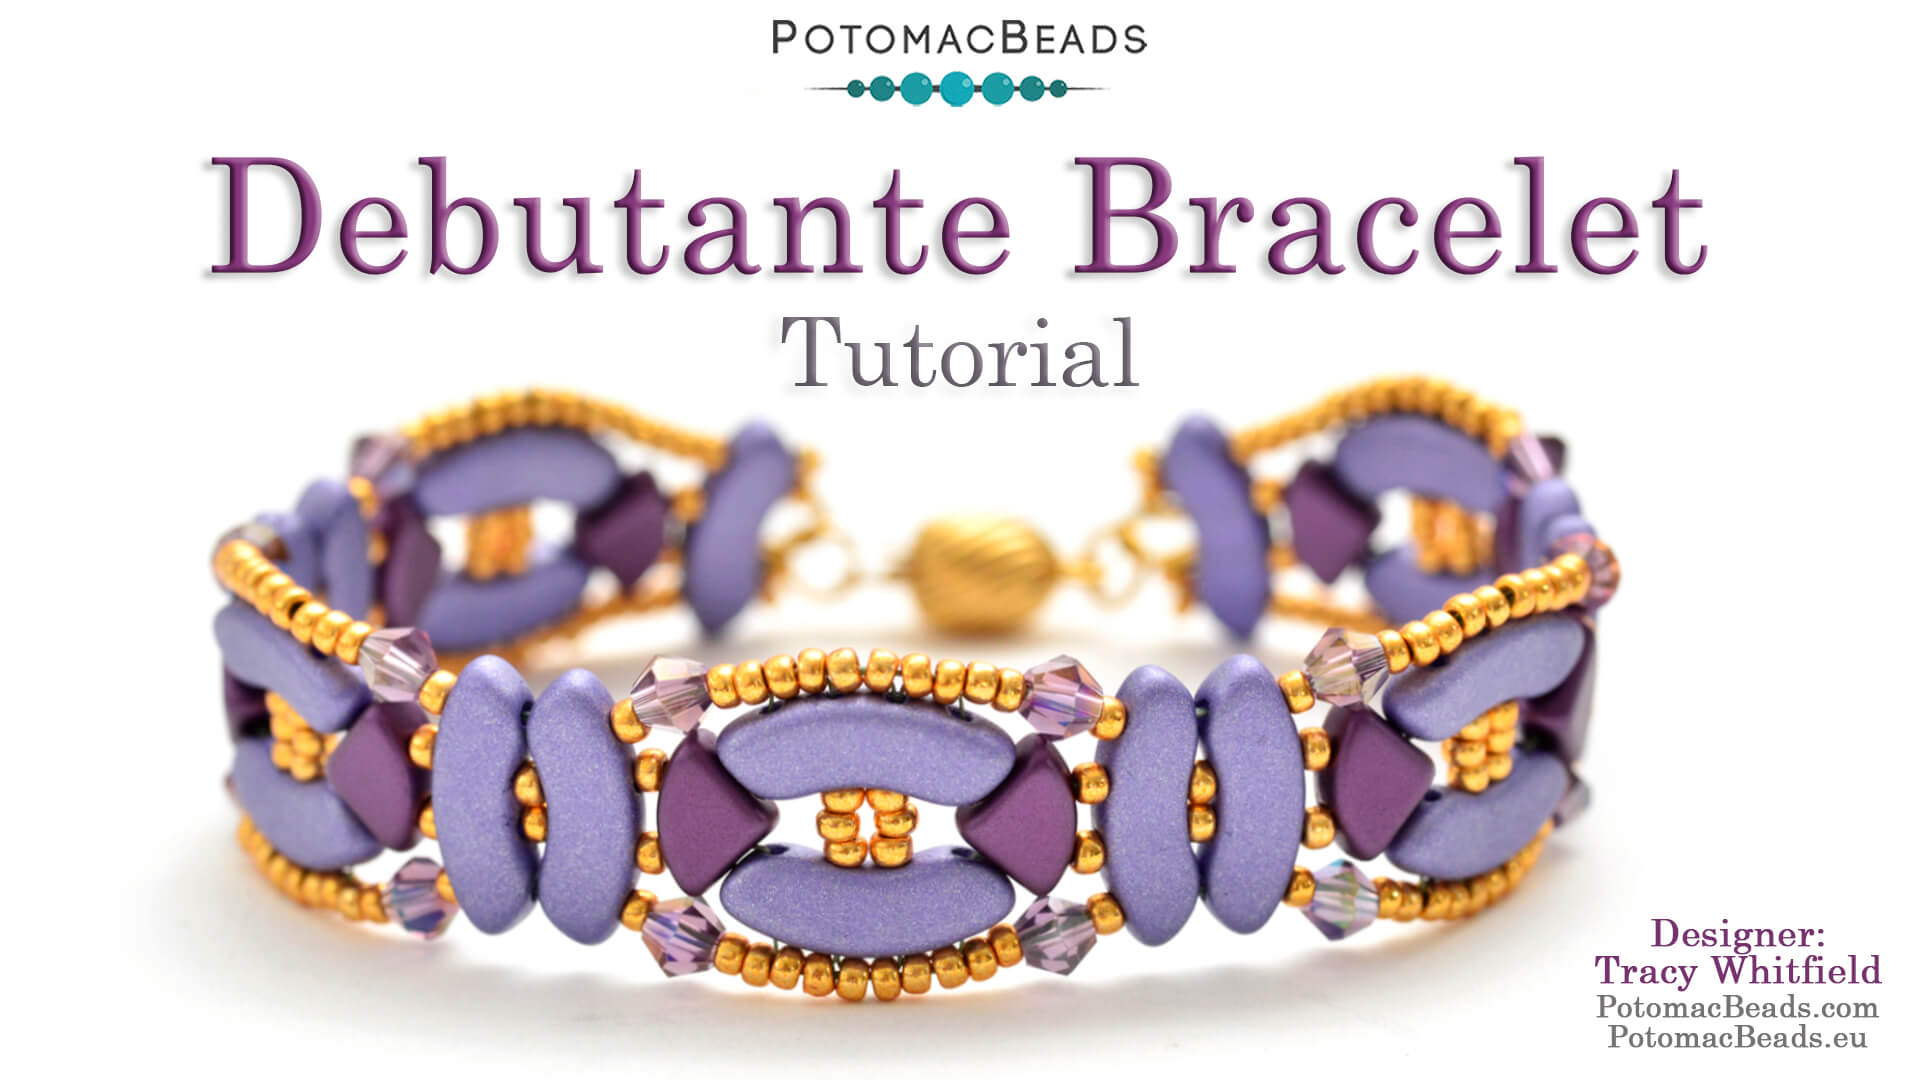 How to Bead / Videos Sorted by Beads / QuadBow & PieDuo Bead Videos / Debutante Bracelet Tutorial